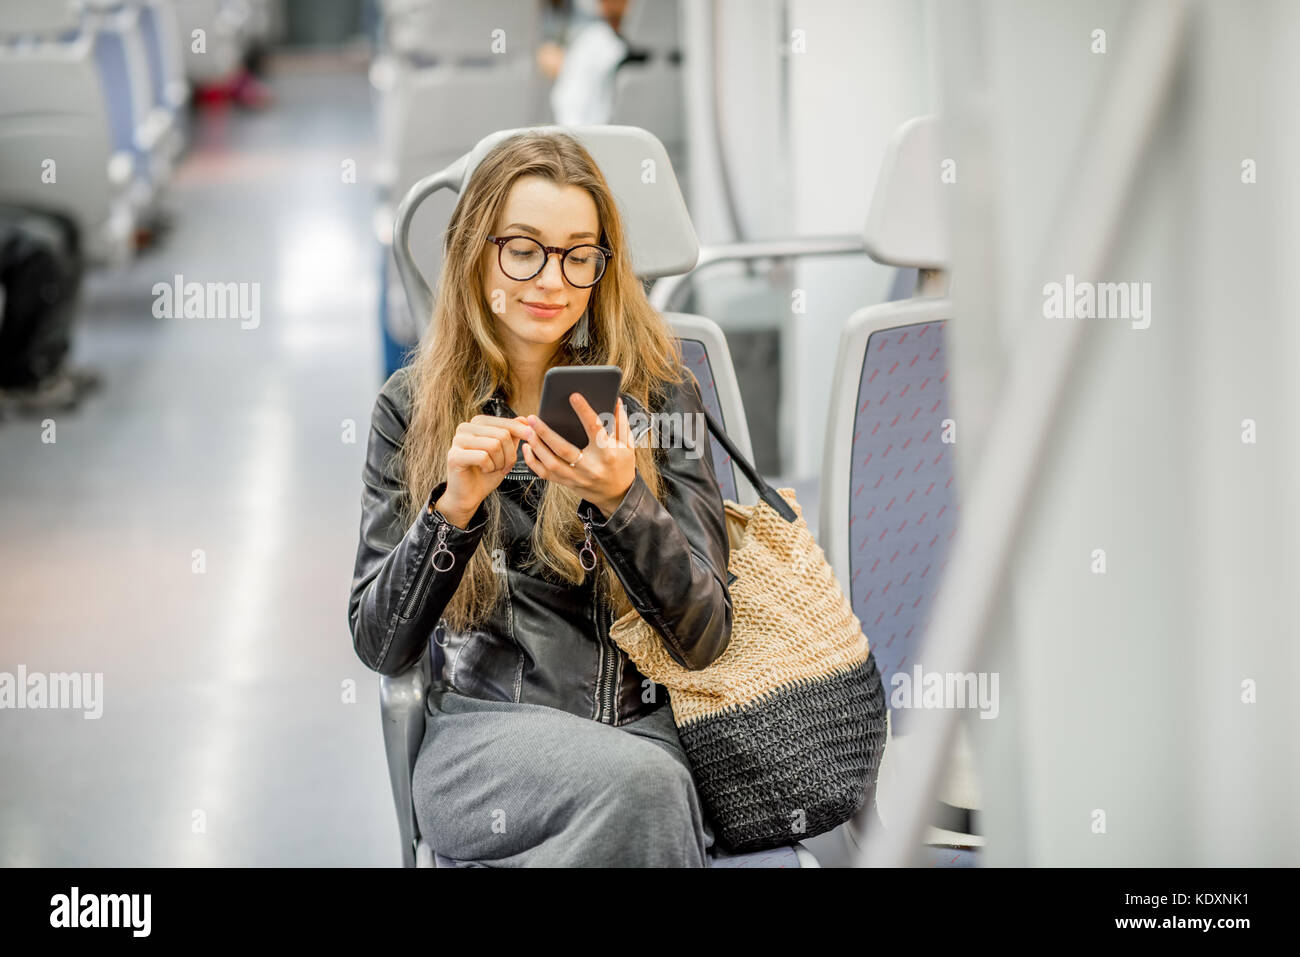 Woman riding at the modern train - Stock Image